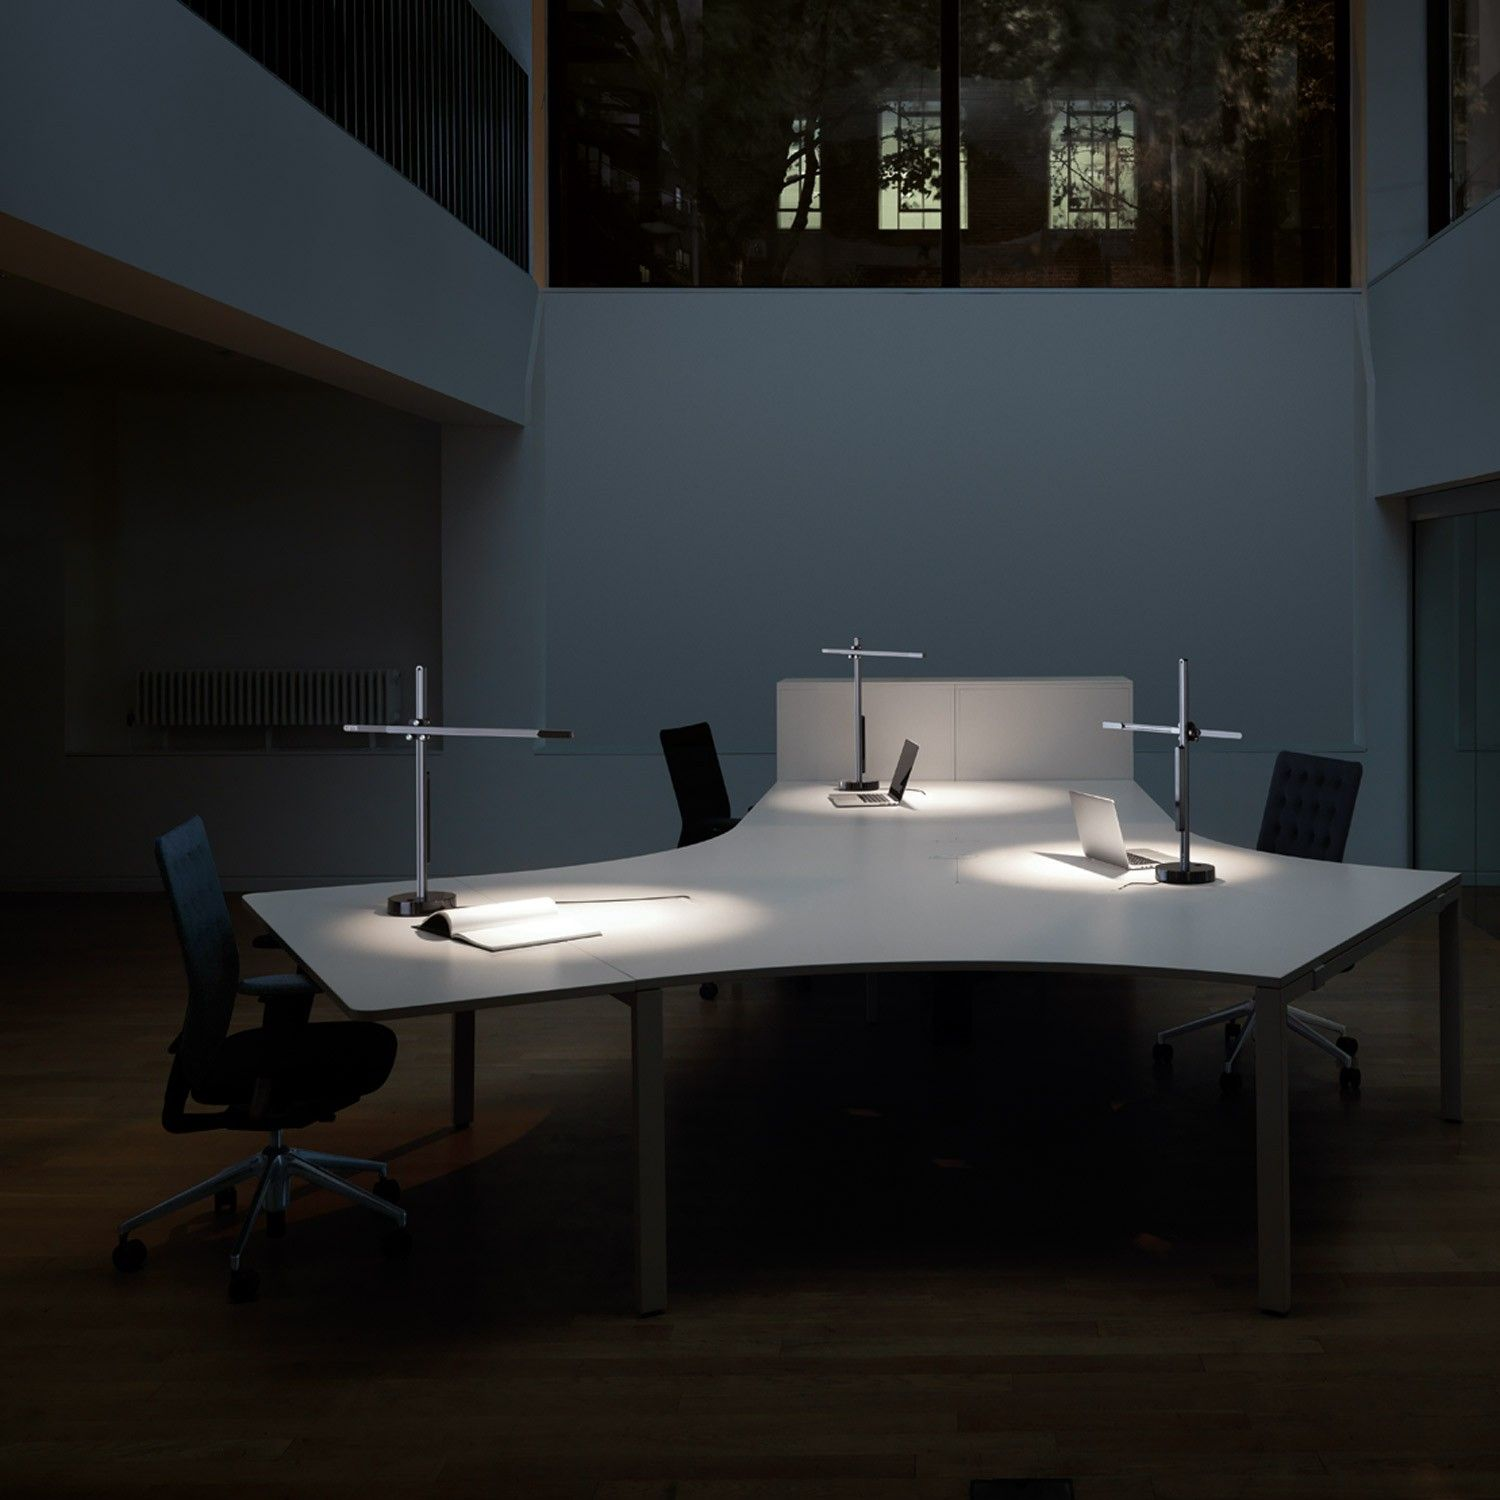 The Csys Led Desk Lamp Is A Sleek And Minimal Fixture Idea For Modern Work Spaces Modern Office Lighting Modern Interior Design Modern Lamp